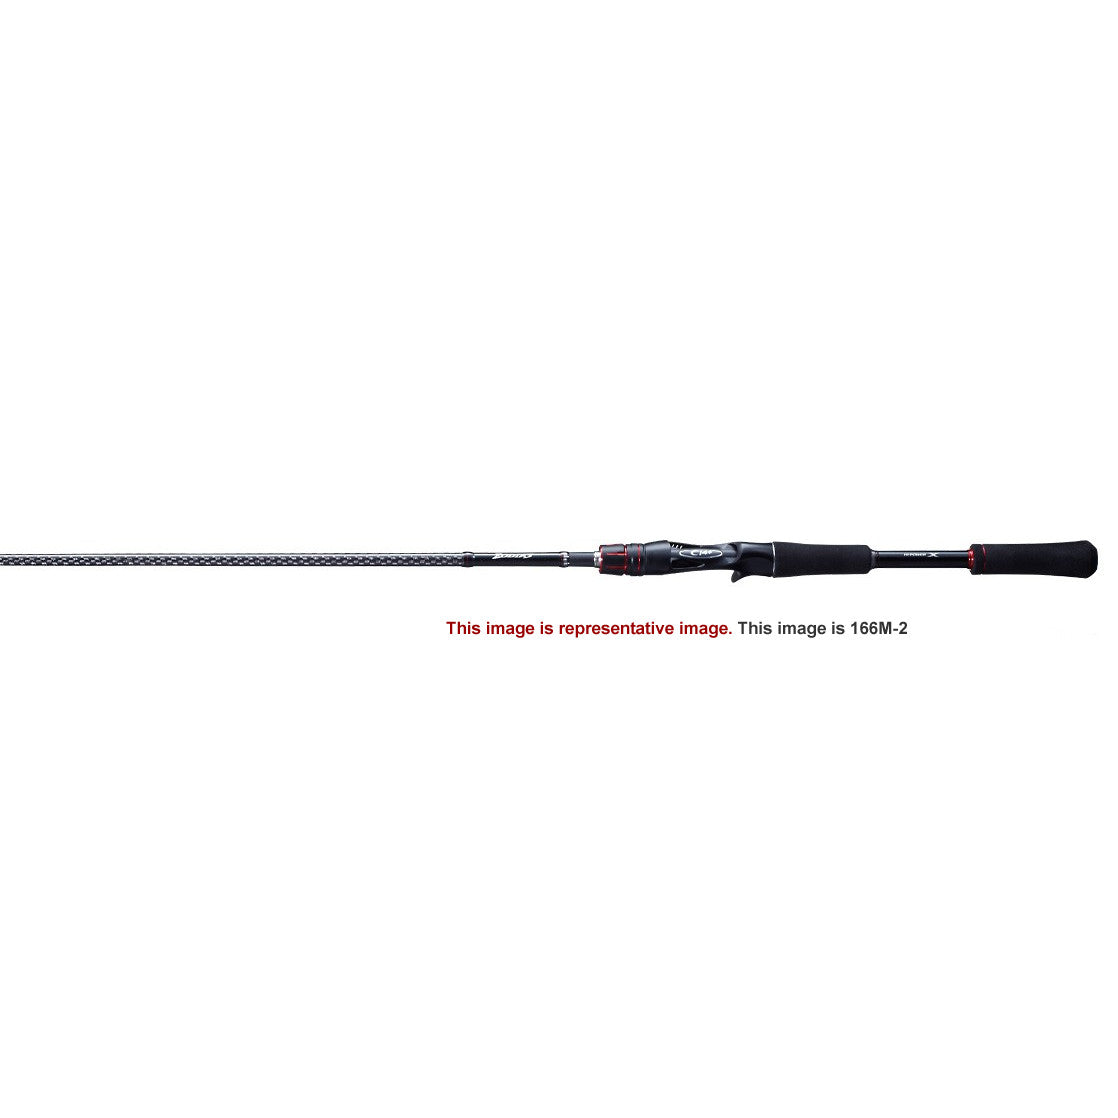 Shimano ZODIAS TECHNICAL 66 SERIES 166ML-2 / 362971 / Bass Rods